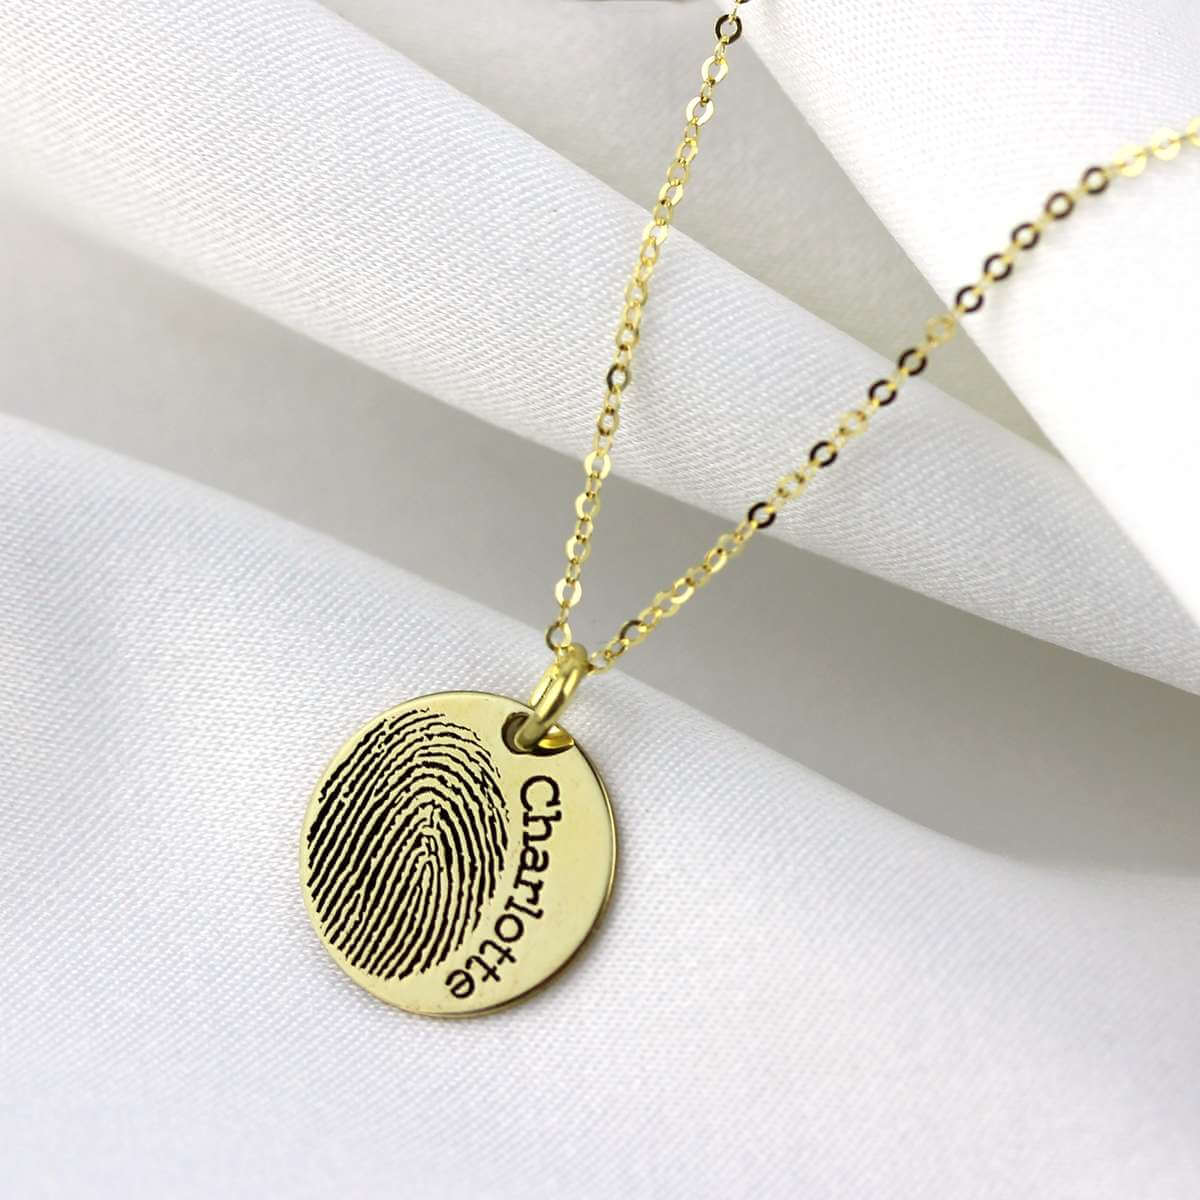 Bespoke 9ct Gold 14mm Fingerprint Name Necklace 16-24 Inches